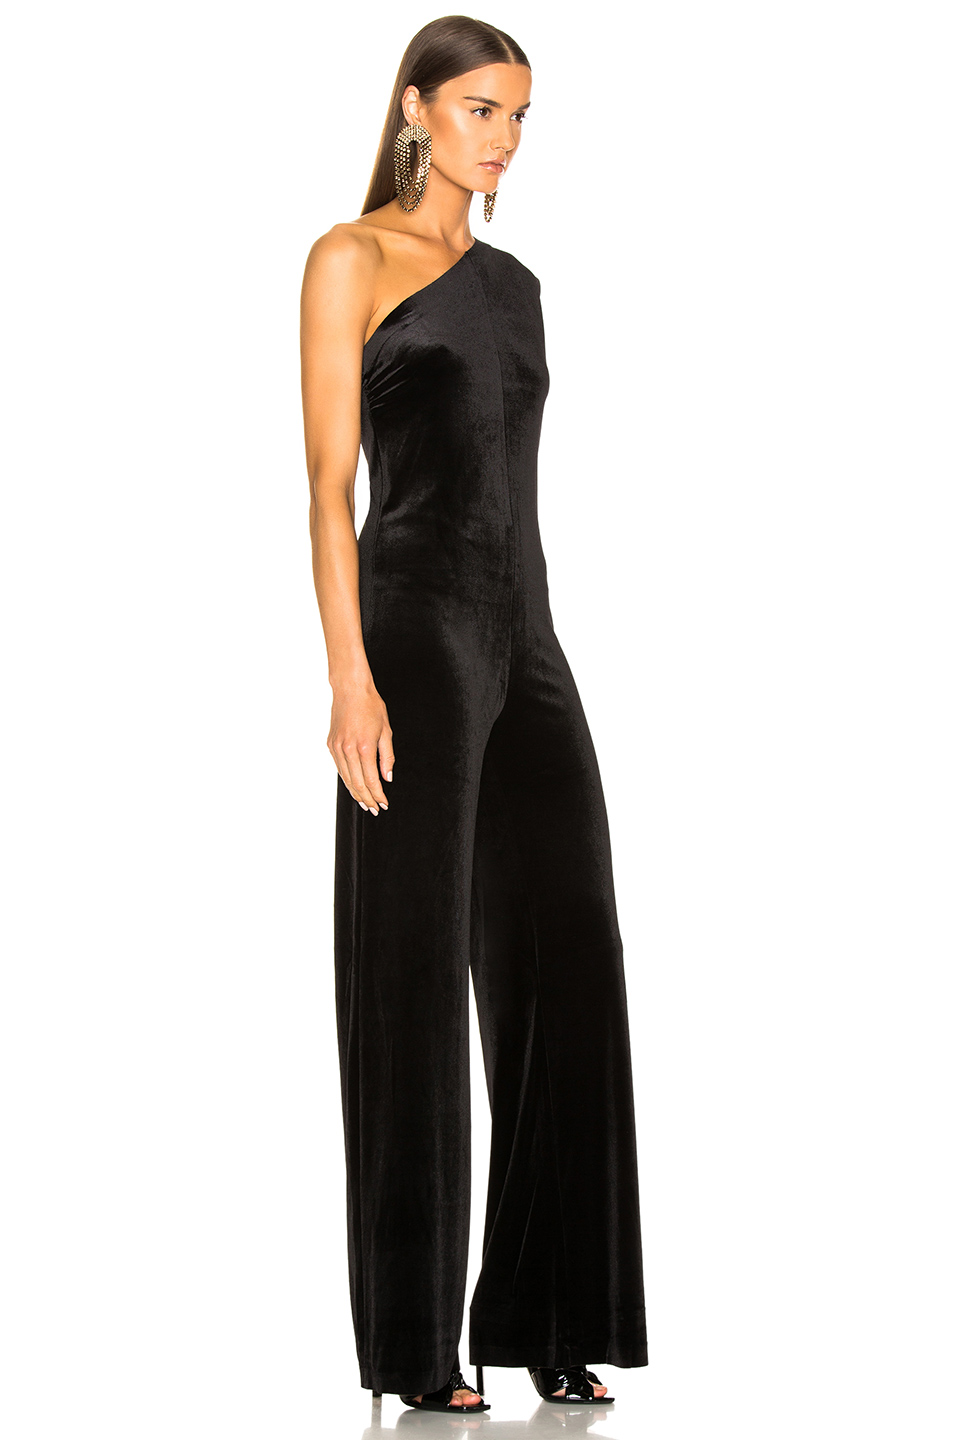 e125266cc8b9 Buy Original Norma Kamali One Shoulder Velvet Jumpsuit at ...